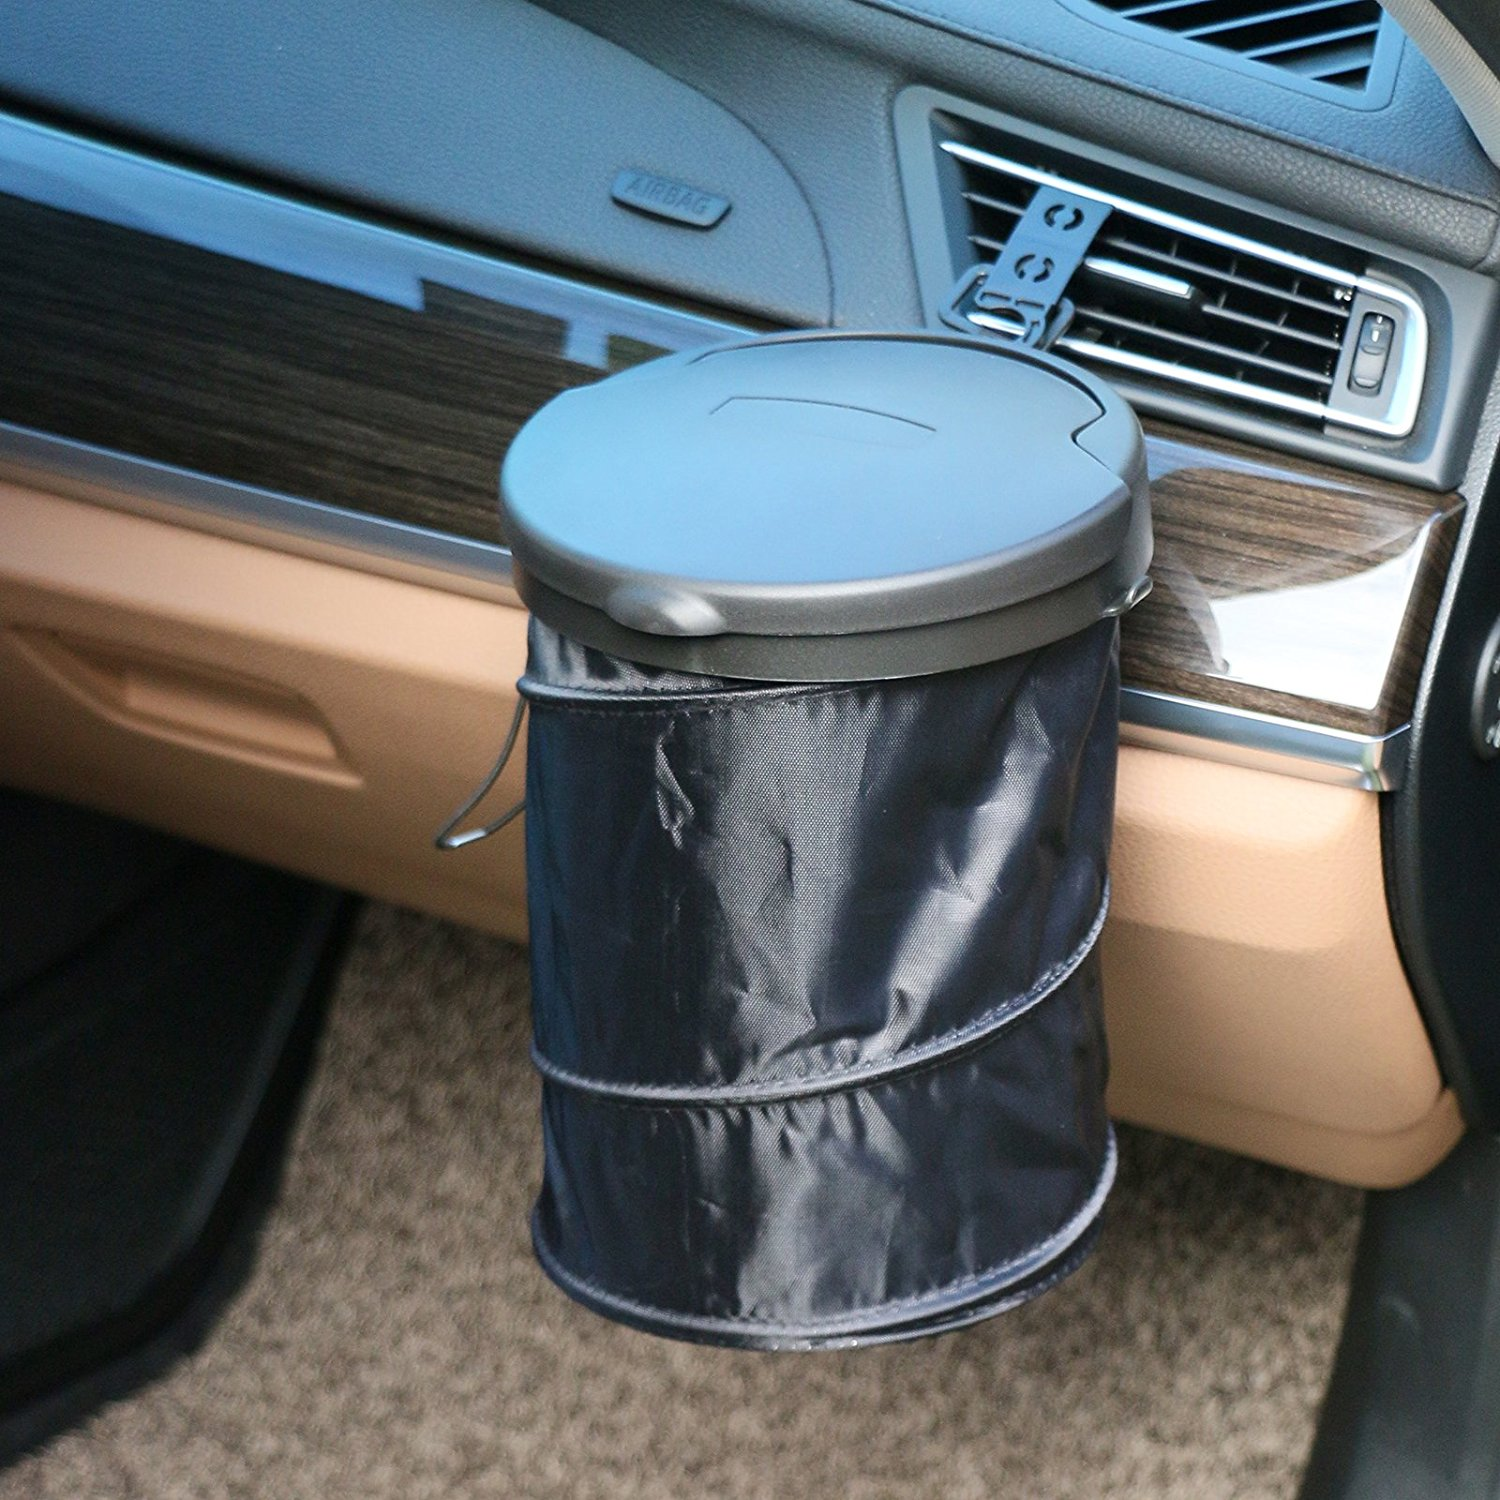 Auto Garbage Trash Can Wastebasket Dust Leakproof Pop-up Foldable Bin//Bag Car